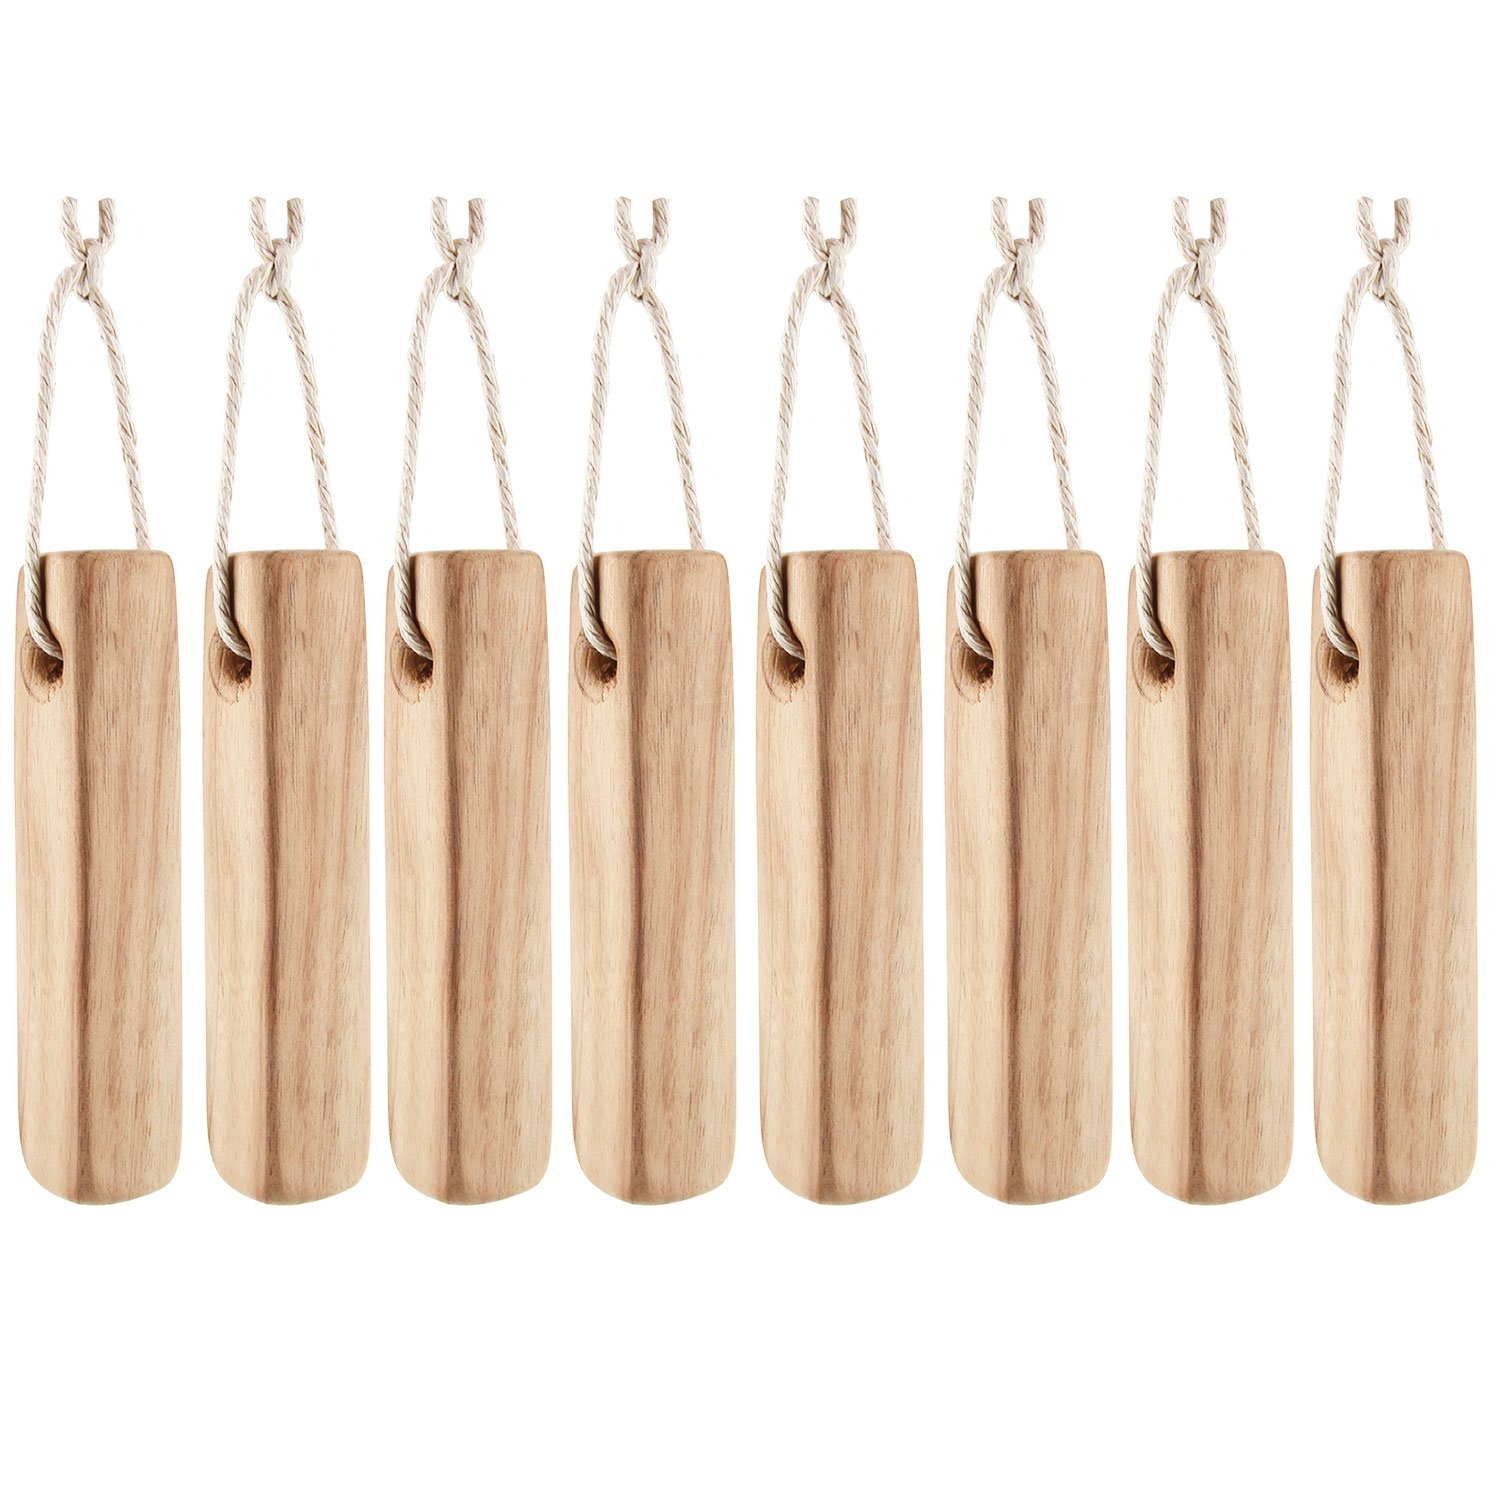 Moth Repellent, ISUDA Natural Fresh Camphor Wood Root Aromatic Non-toxic Clothes Protector and Moth Repellent Wood Mothball for Closet and Drawer Storage Accessories - 8 Pack